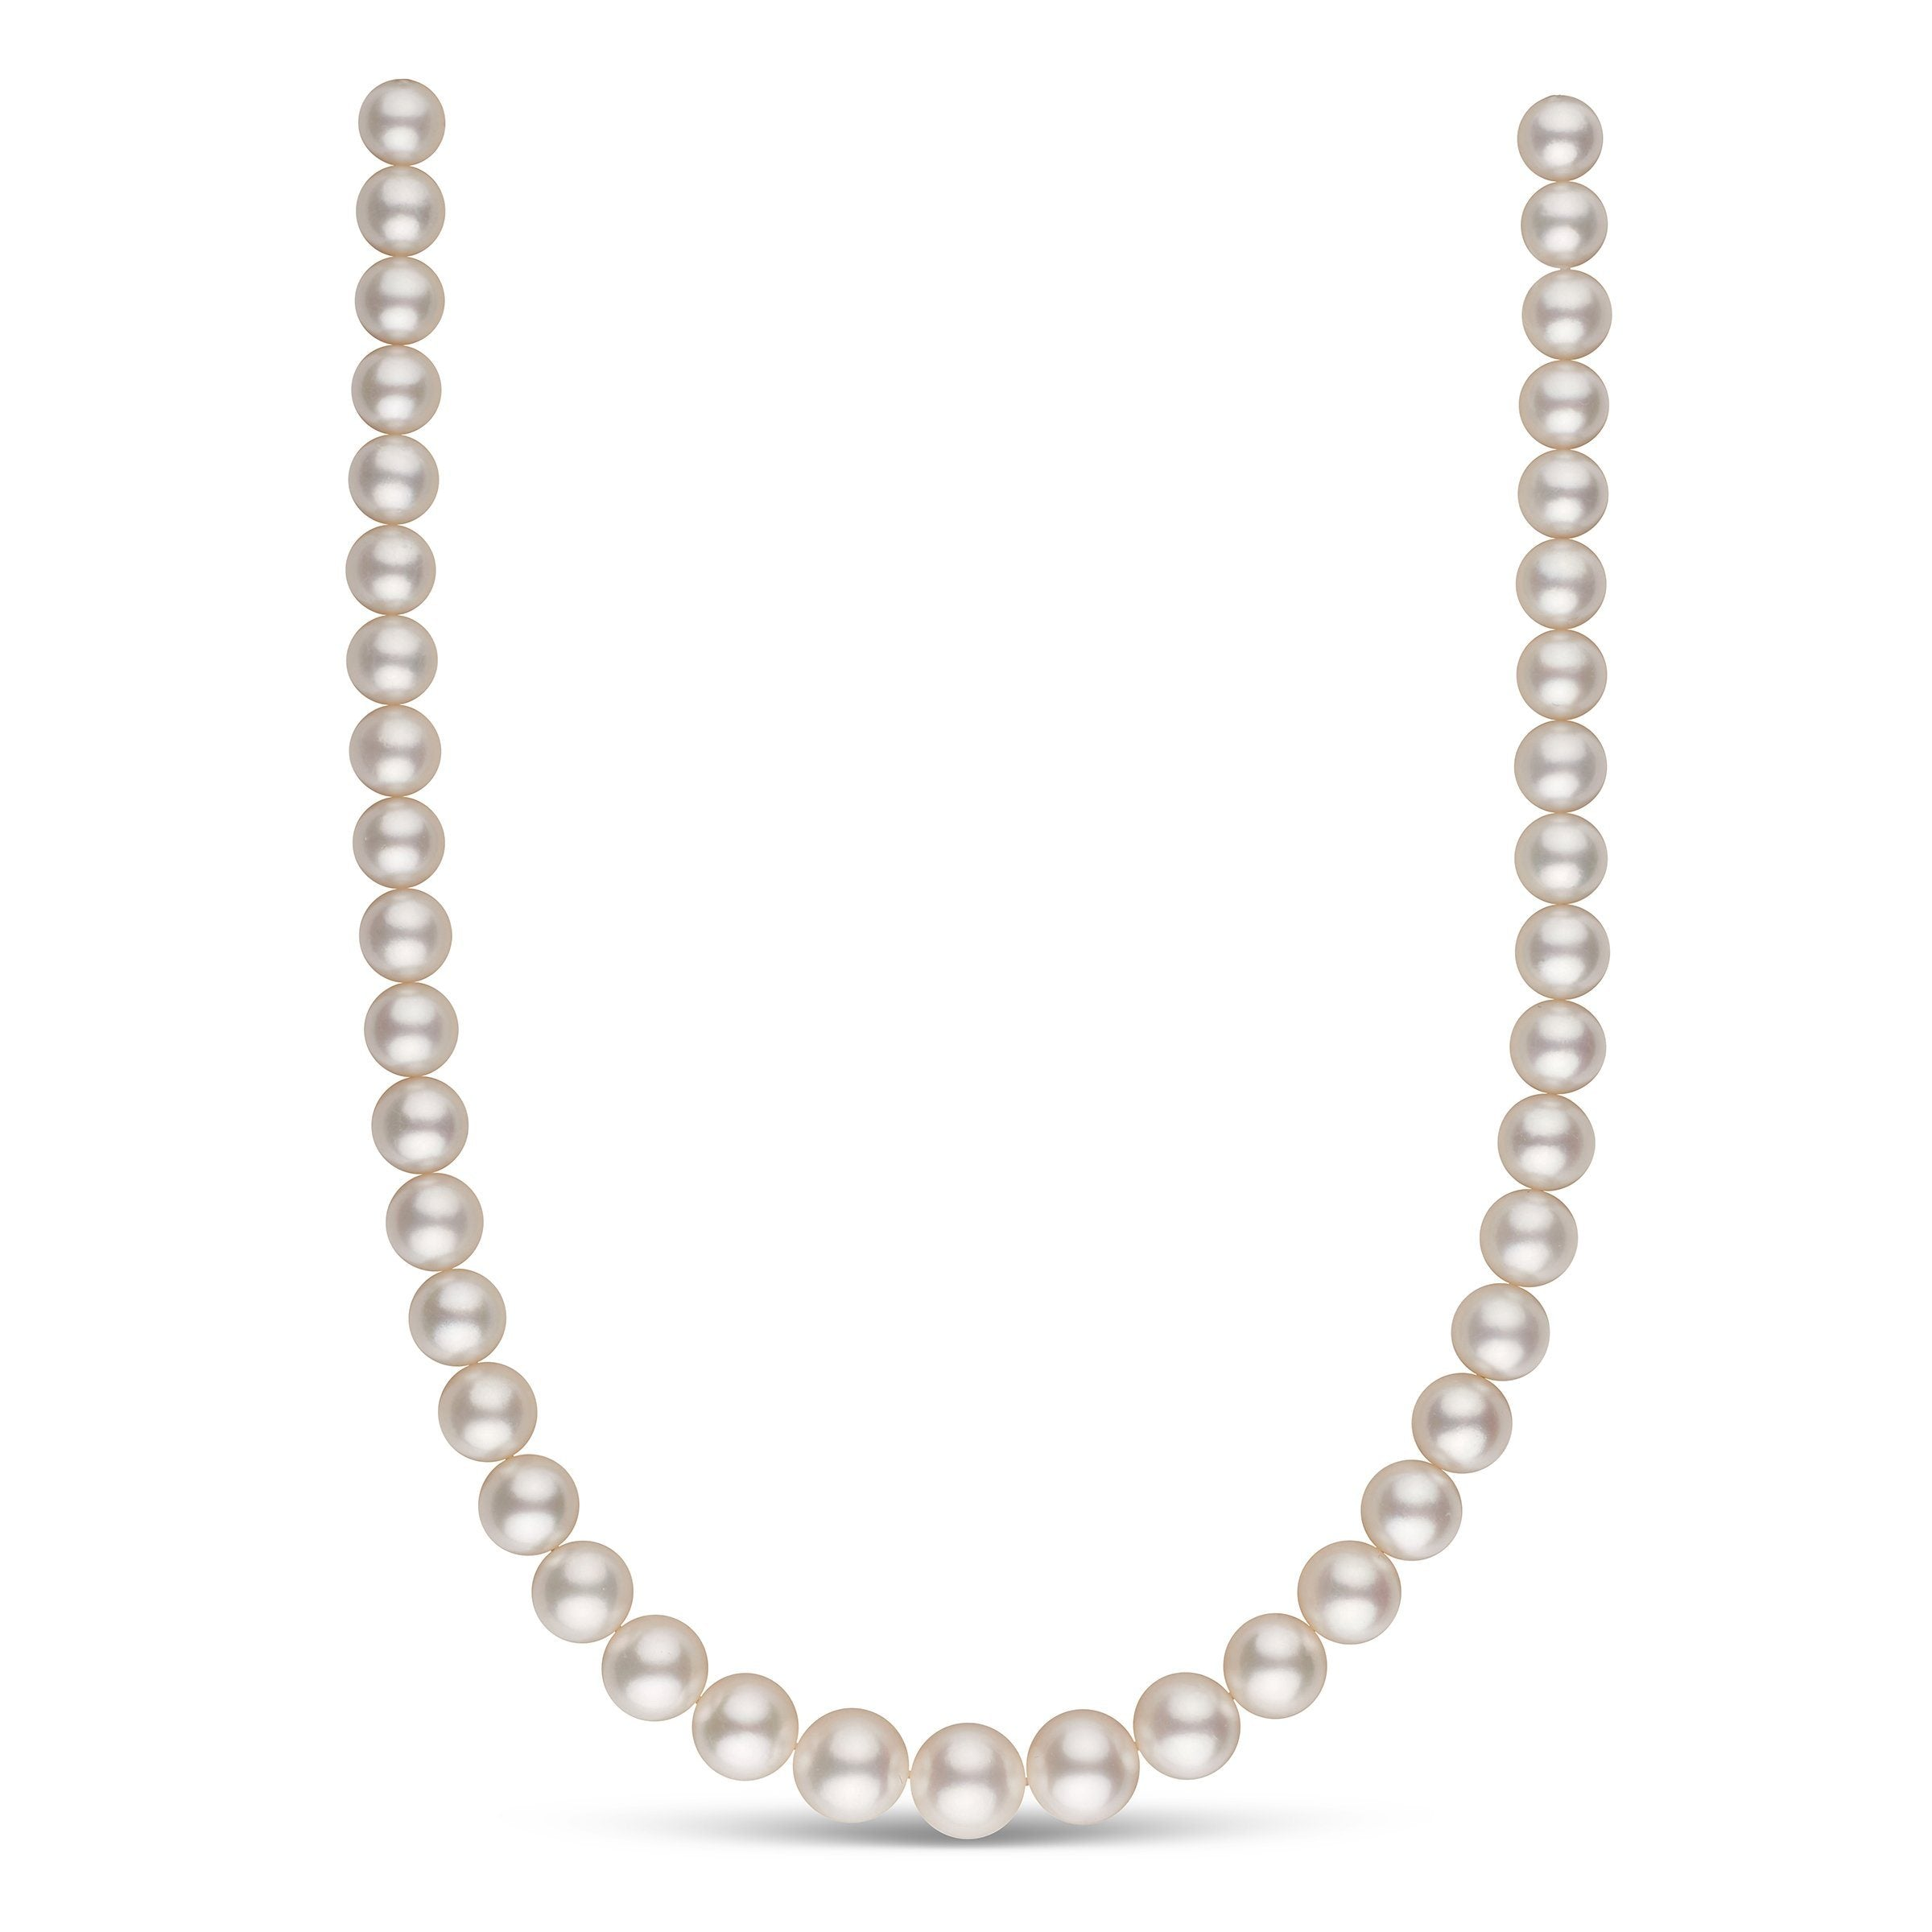 The Dolce White South Sea Pearl Necklace